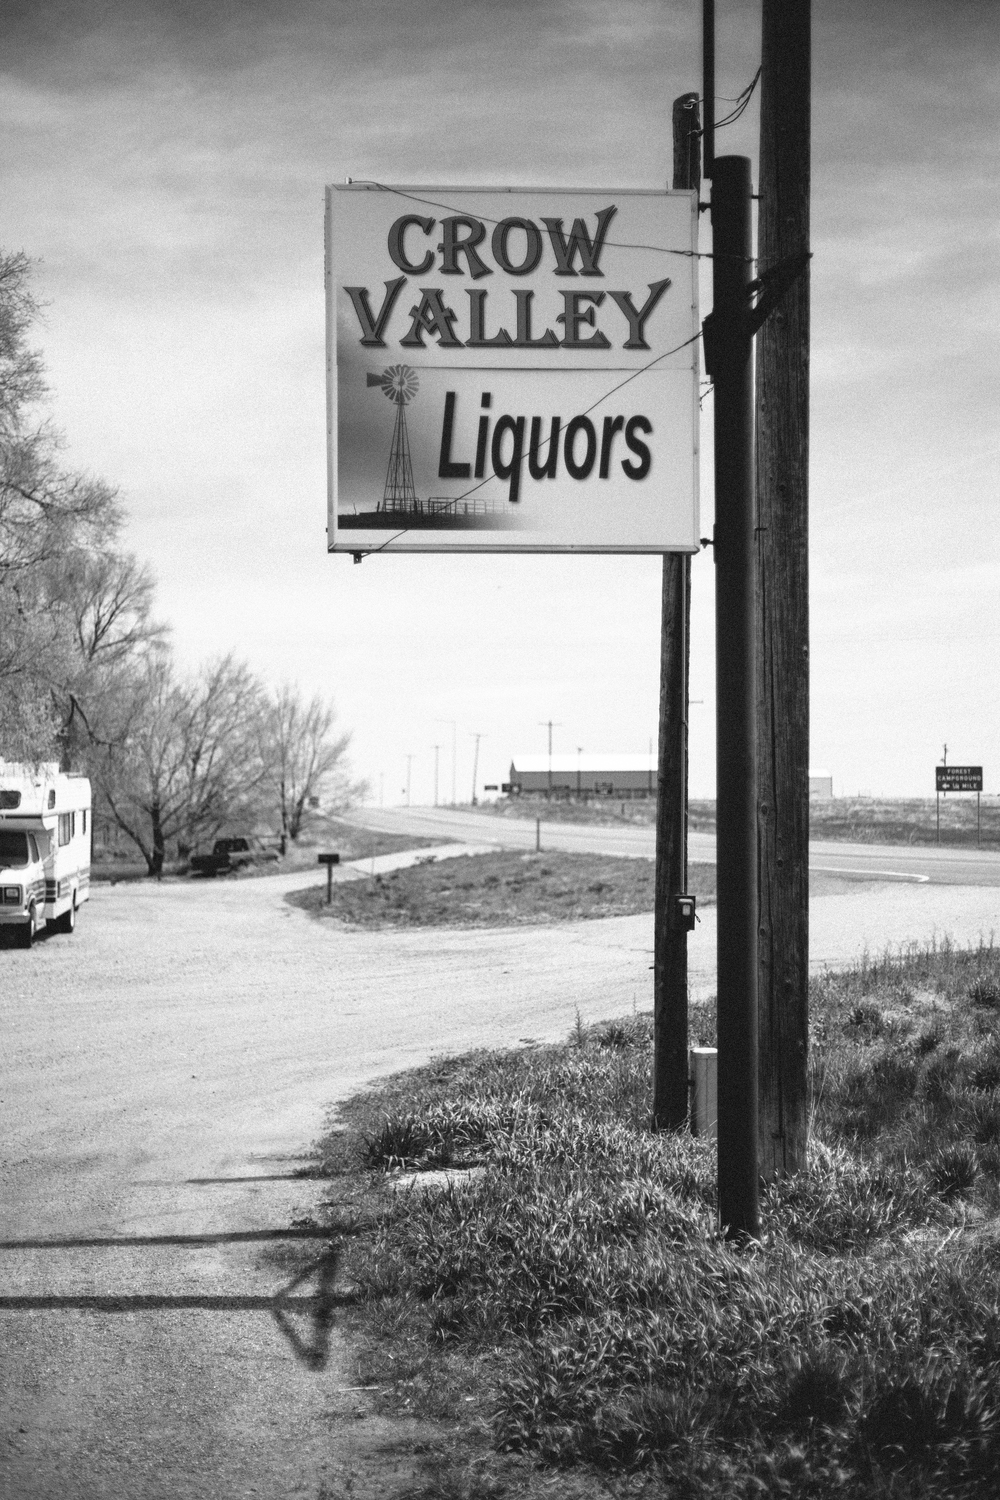 Buttes Trip Crow Valley Liquors.jpg